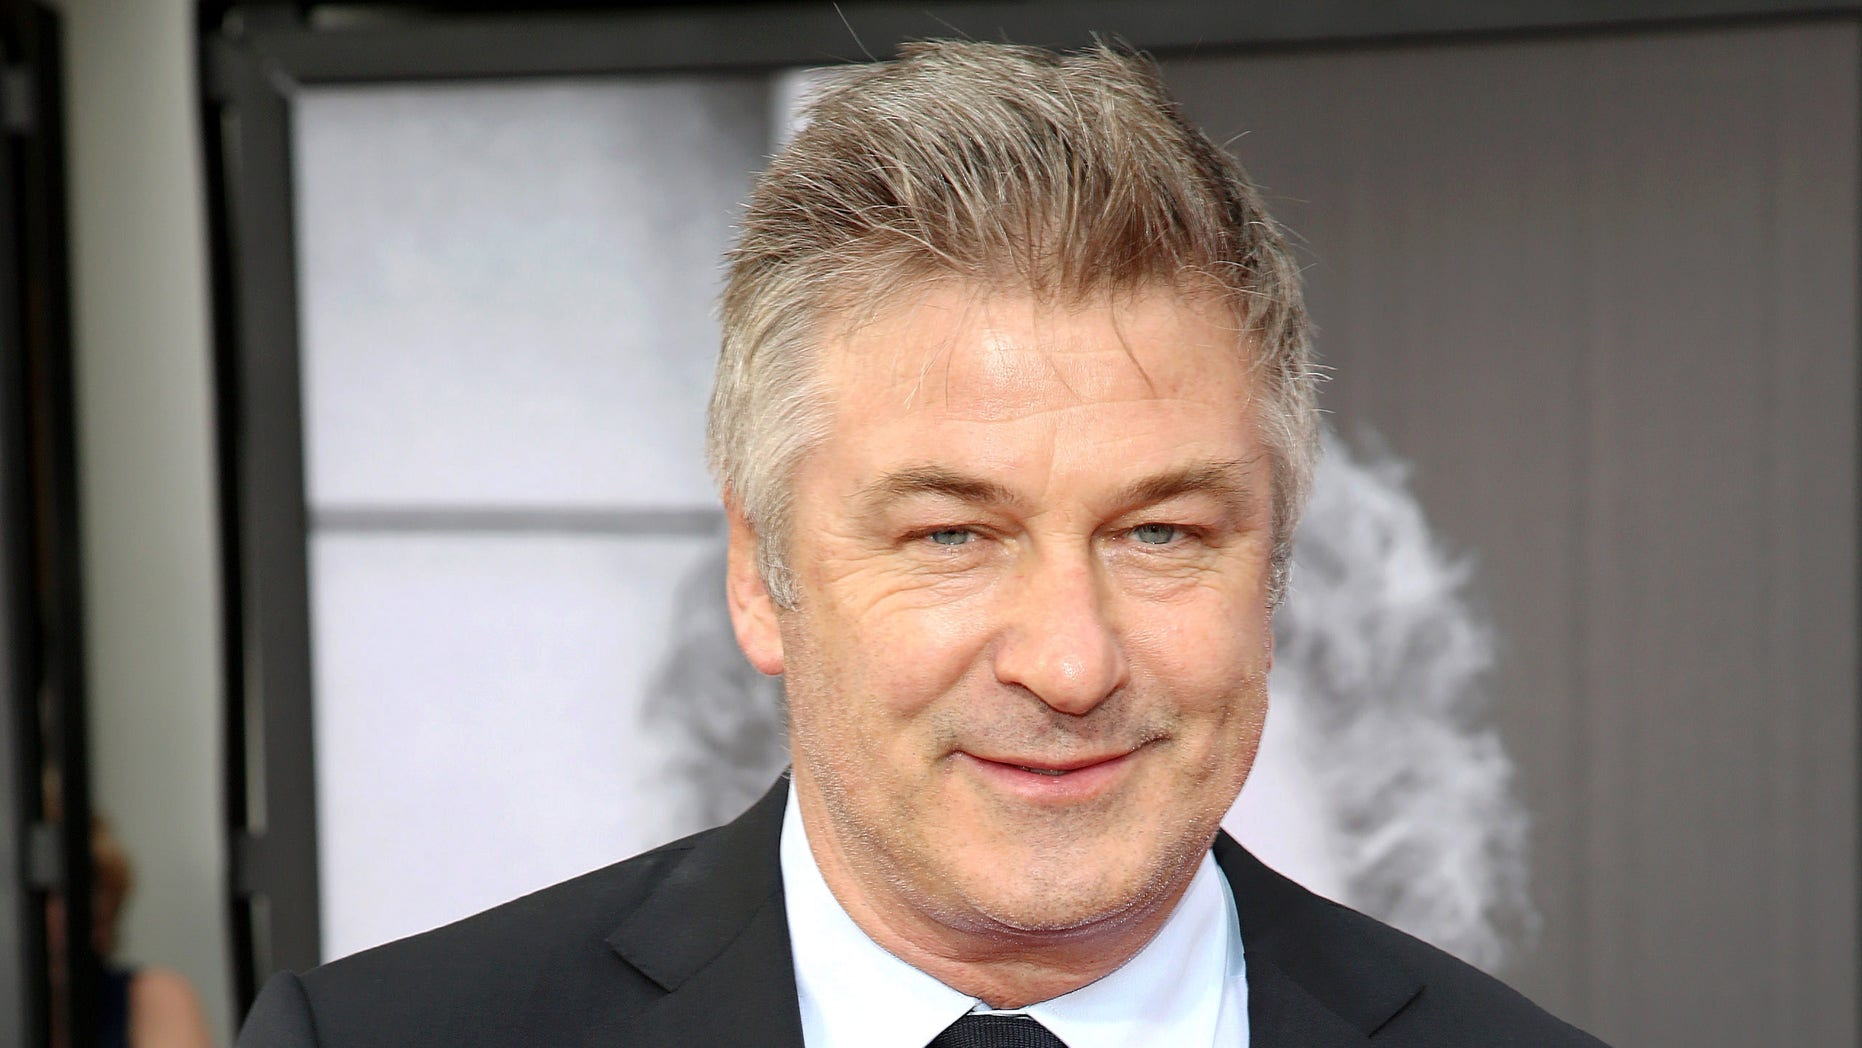 April 10, 2014. Alec Baldwin at the 2014 TCM Classic Film Festival's Opening Night Gala in Los Angeles.